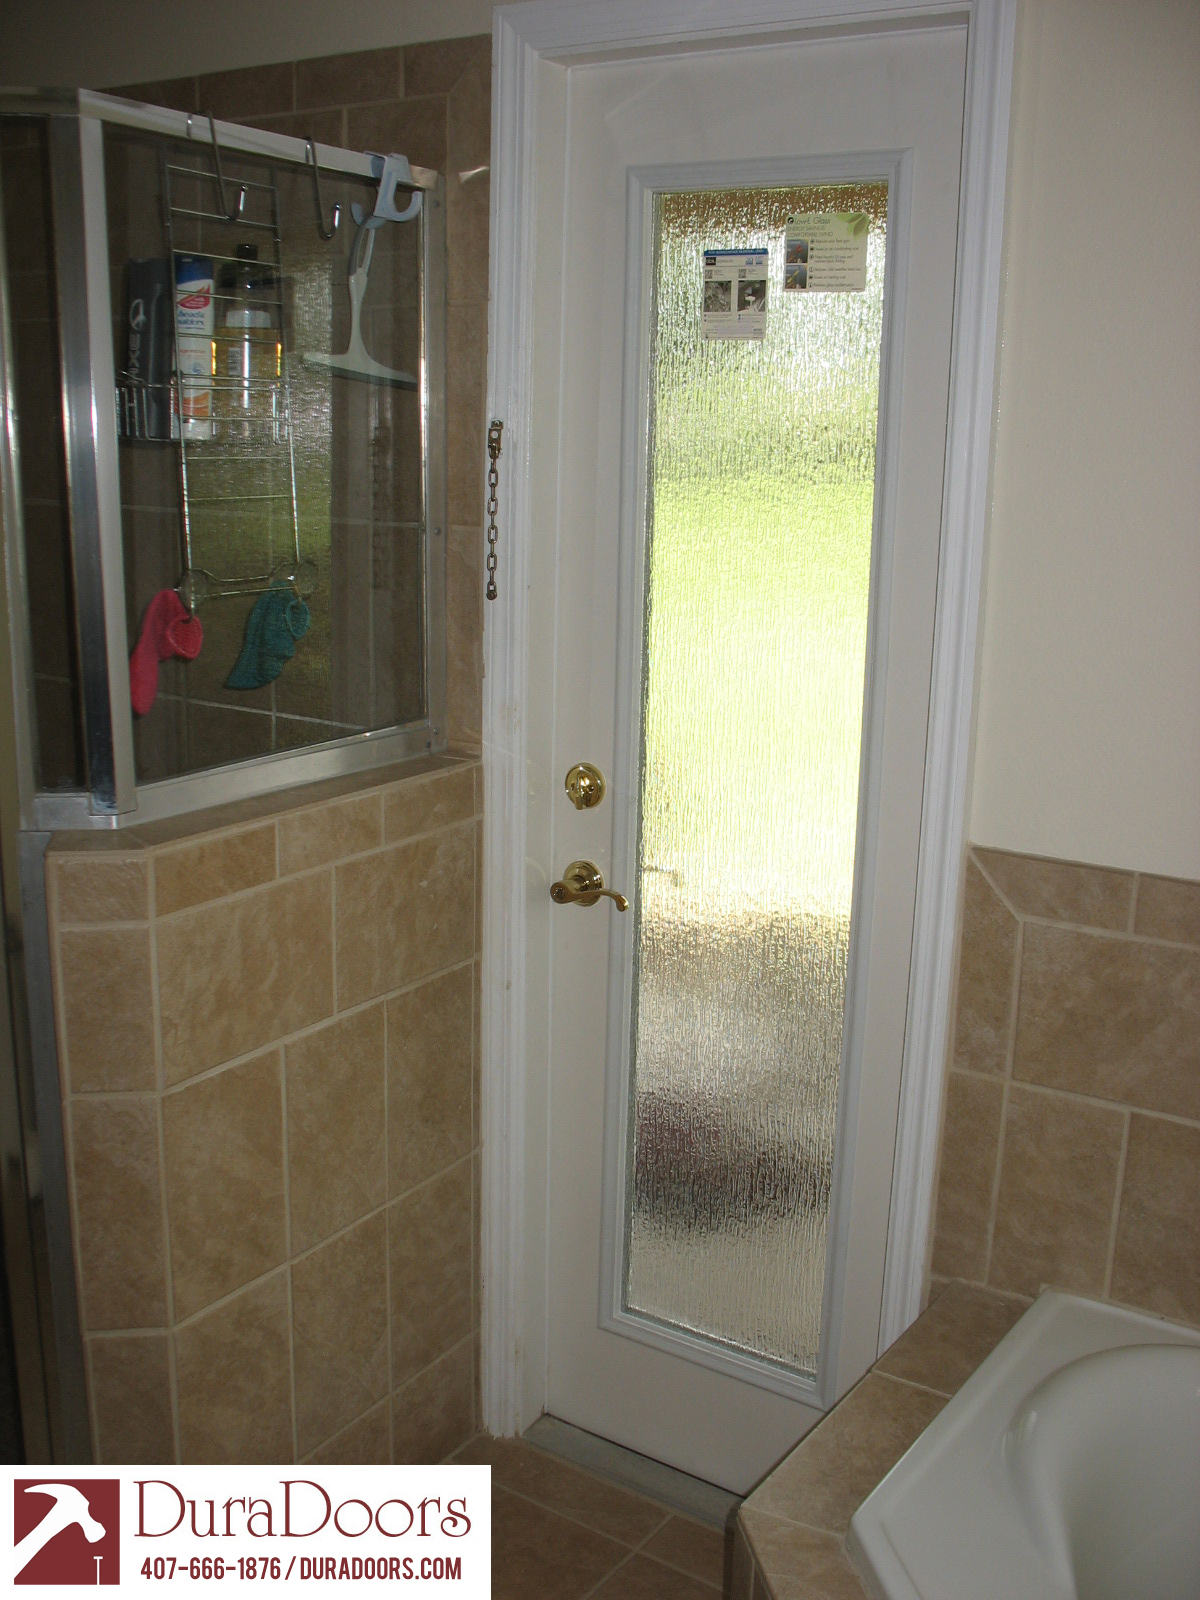 Bathroom door with odl privacy rain glass duradoors for Bathroom entrance doors